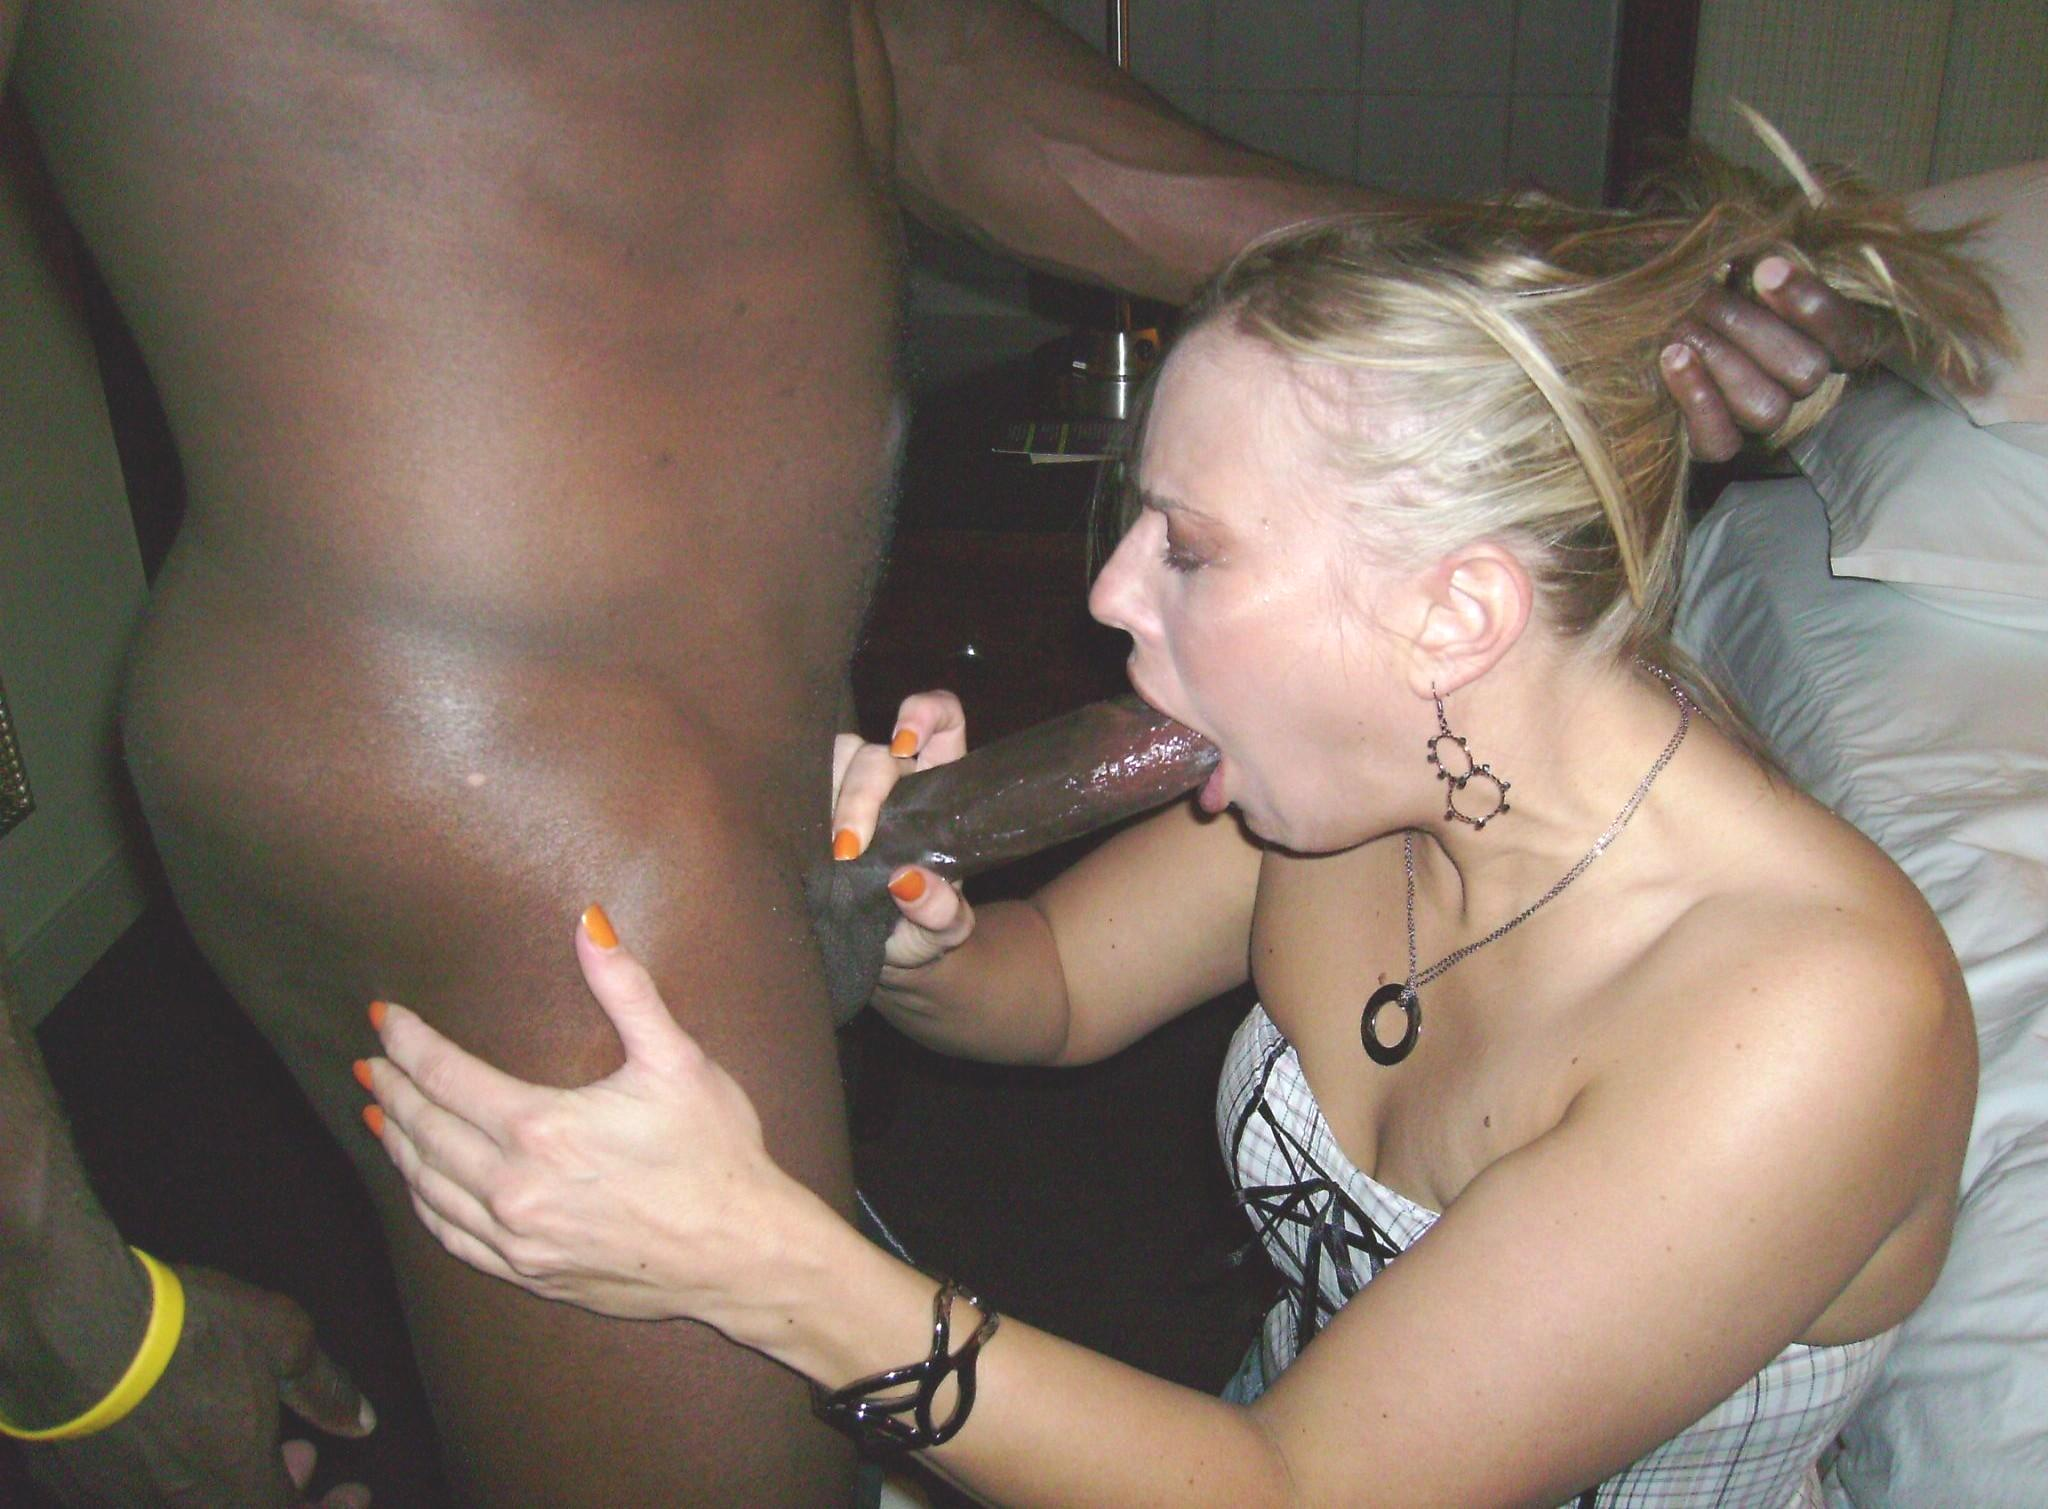 blowjobs and forced deepthroat - motherless